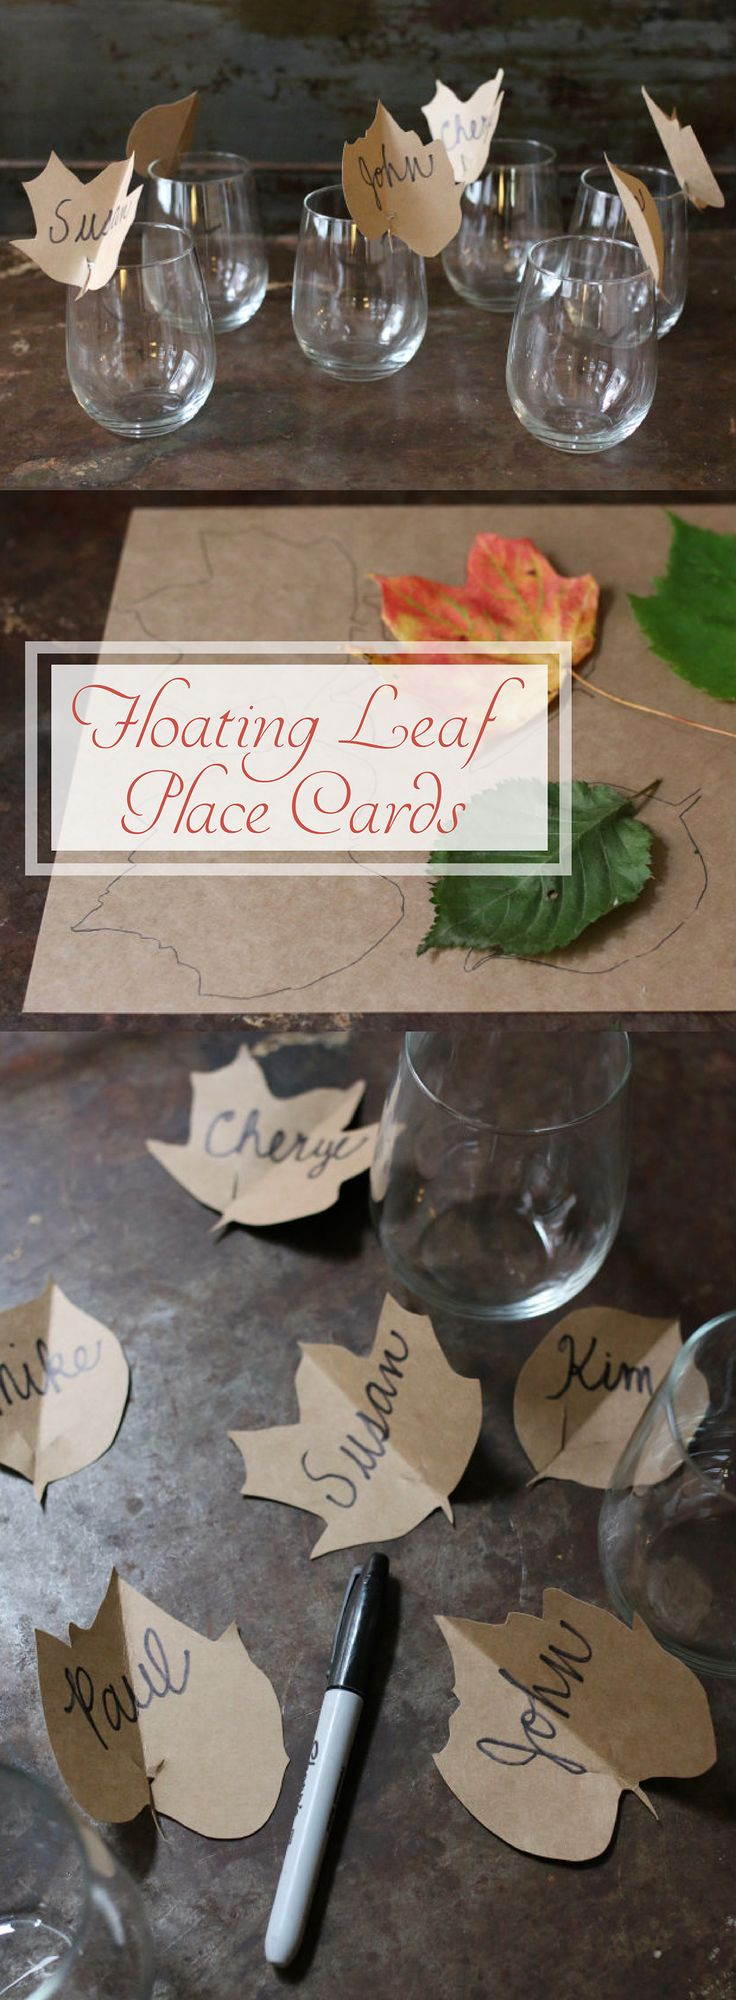 Place cards fall table and thanksgiving dinners on pinterest